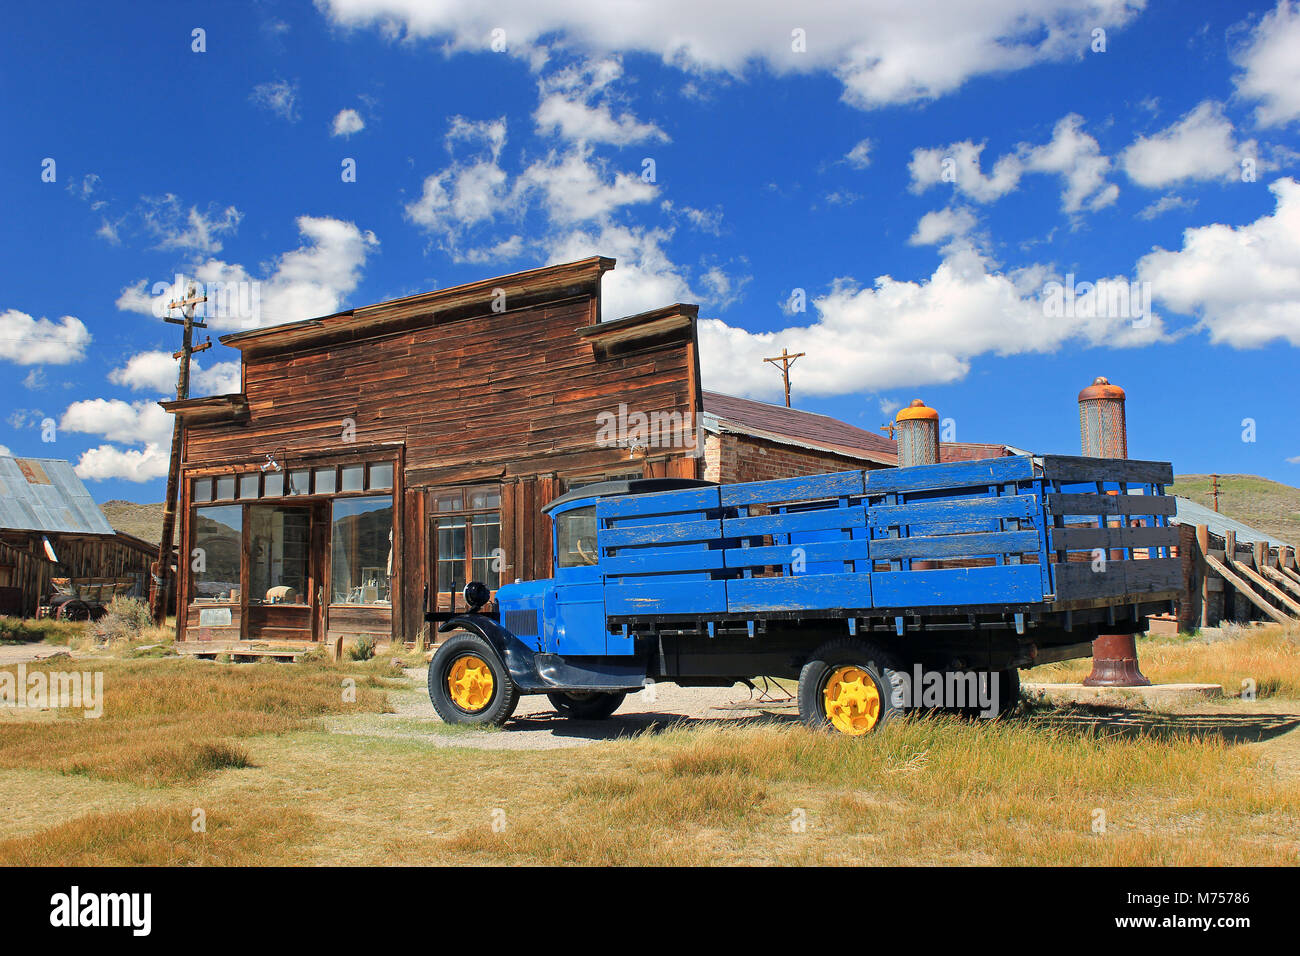 Bodie California Ghost Town - Stock Image